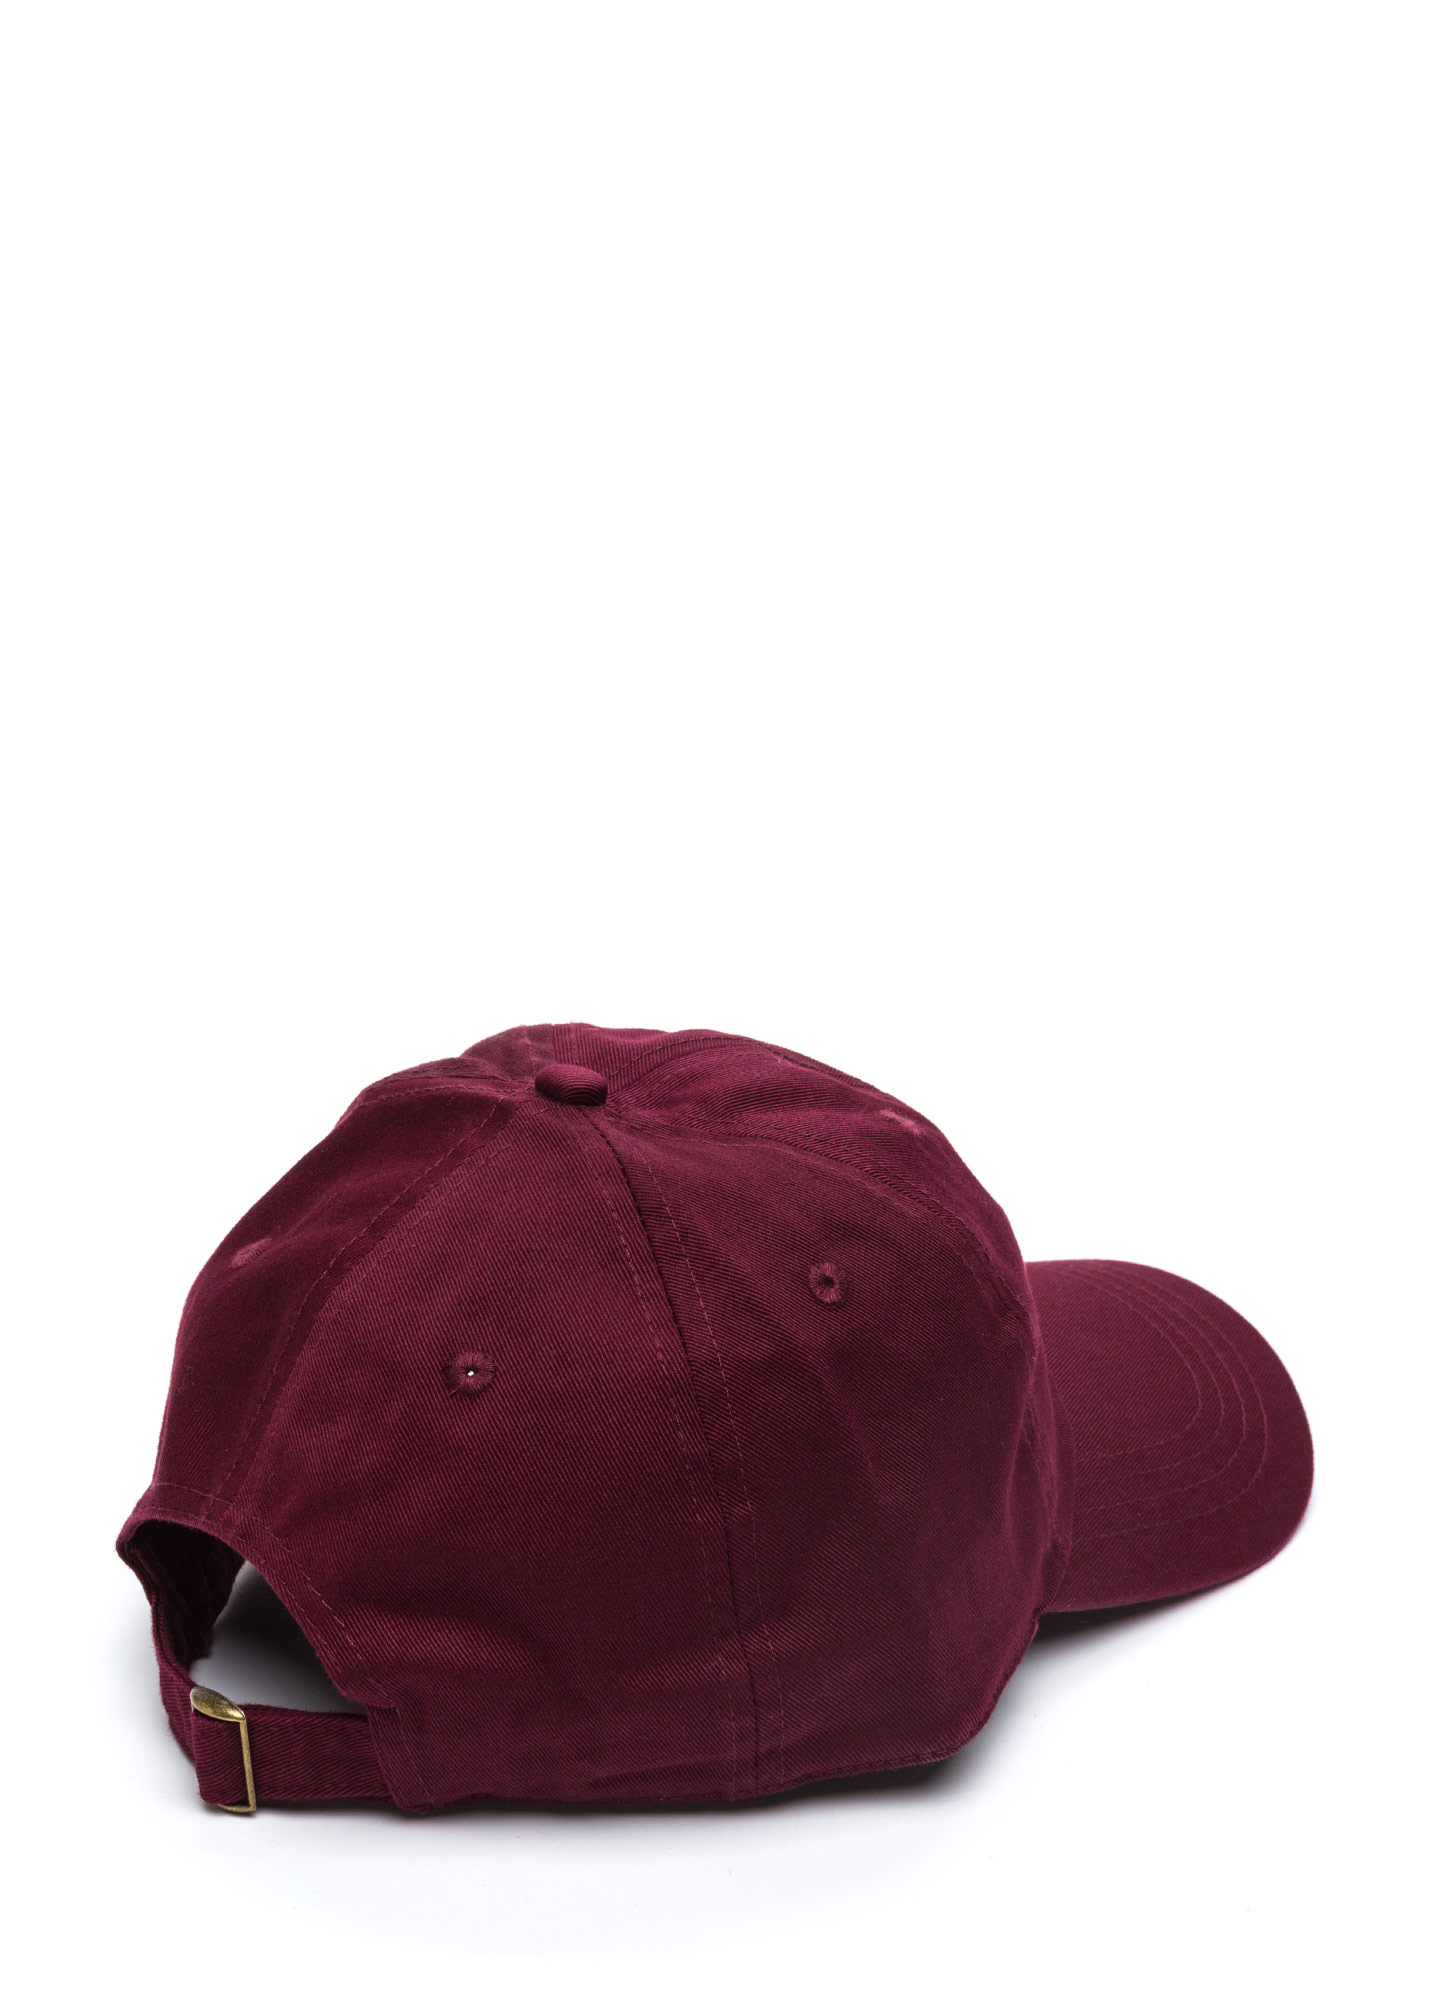 Not A Player Baseball Cap BURGUNDY